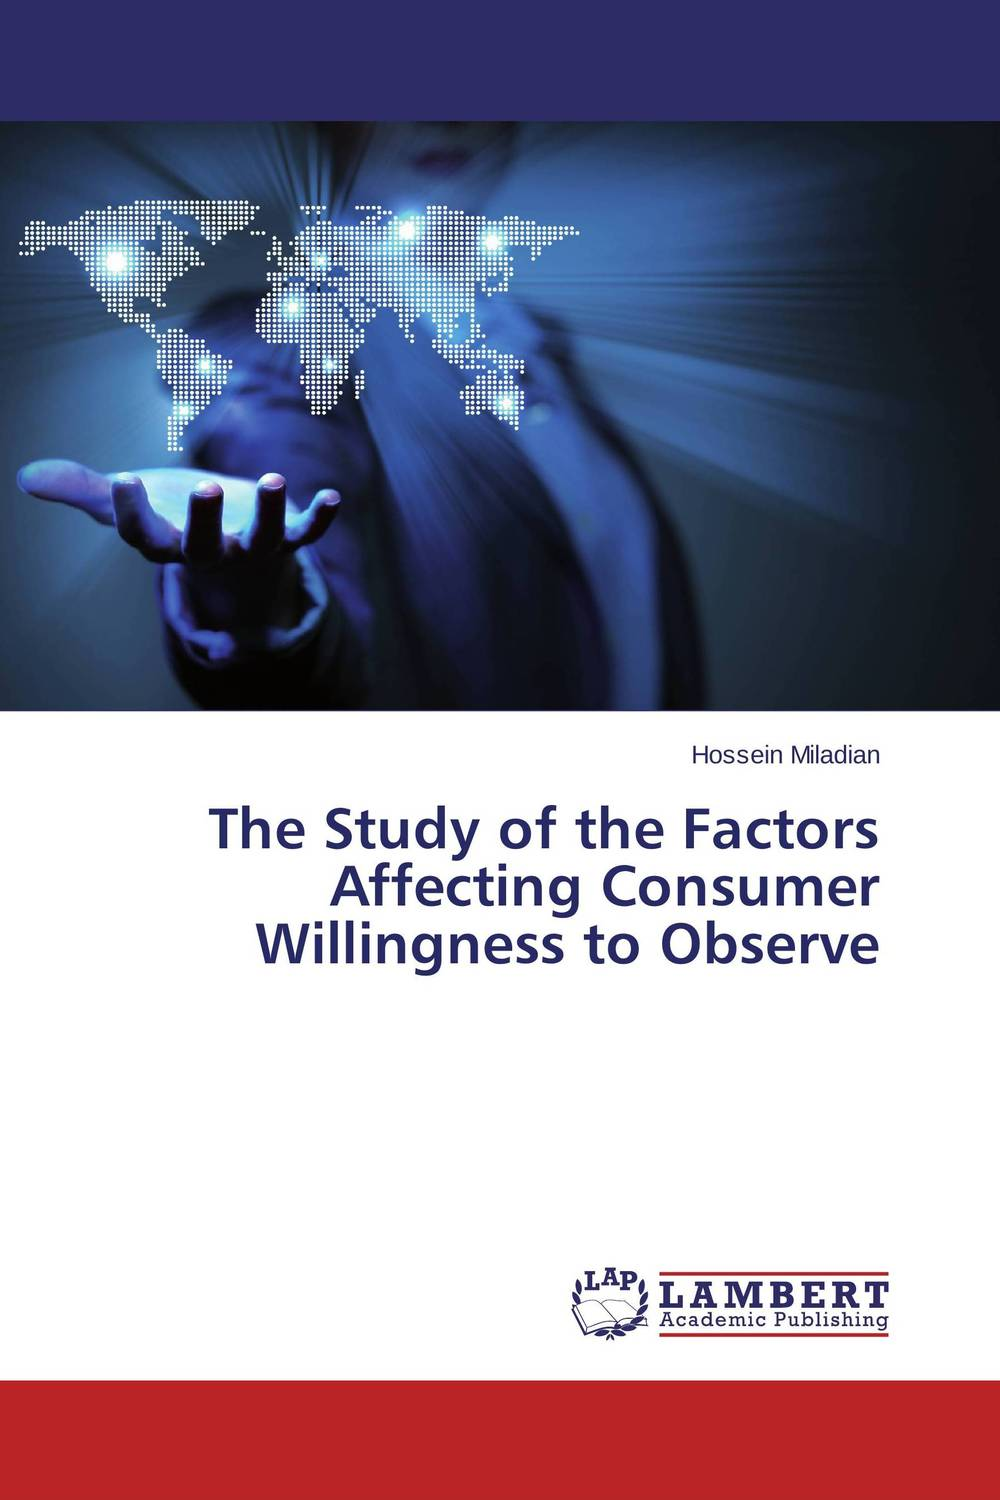 The Study of the Factors Affecting Consumer Willingness to Observe eric holtzclaw v laddering unlocking the potential of consumer behavior